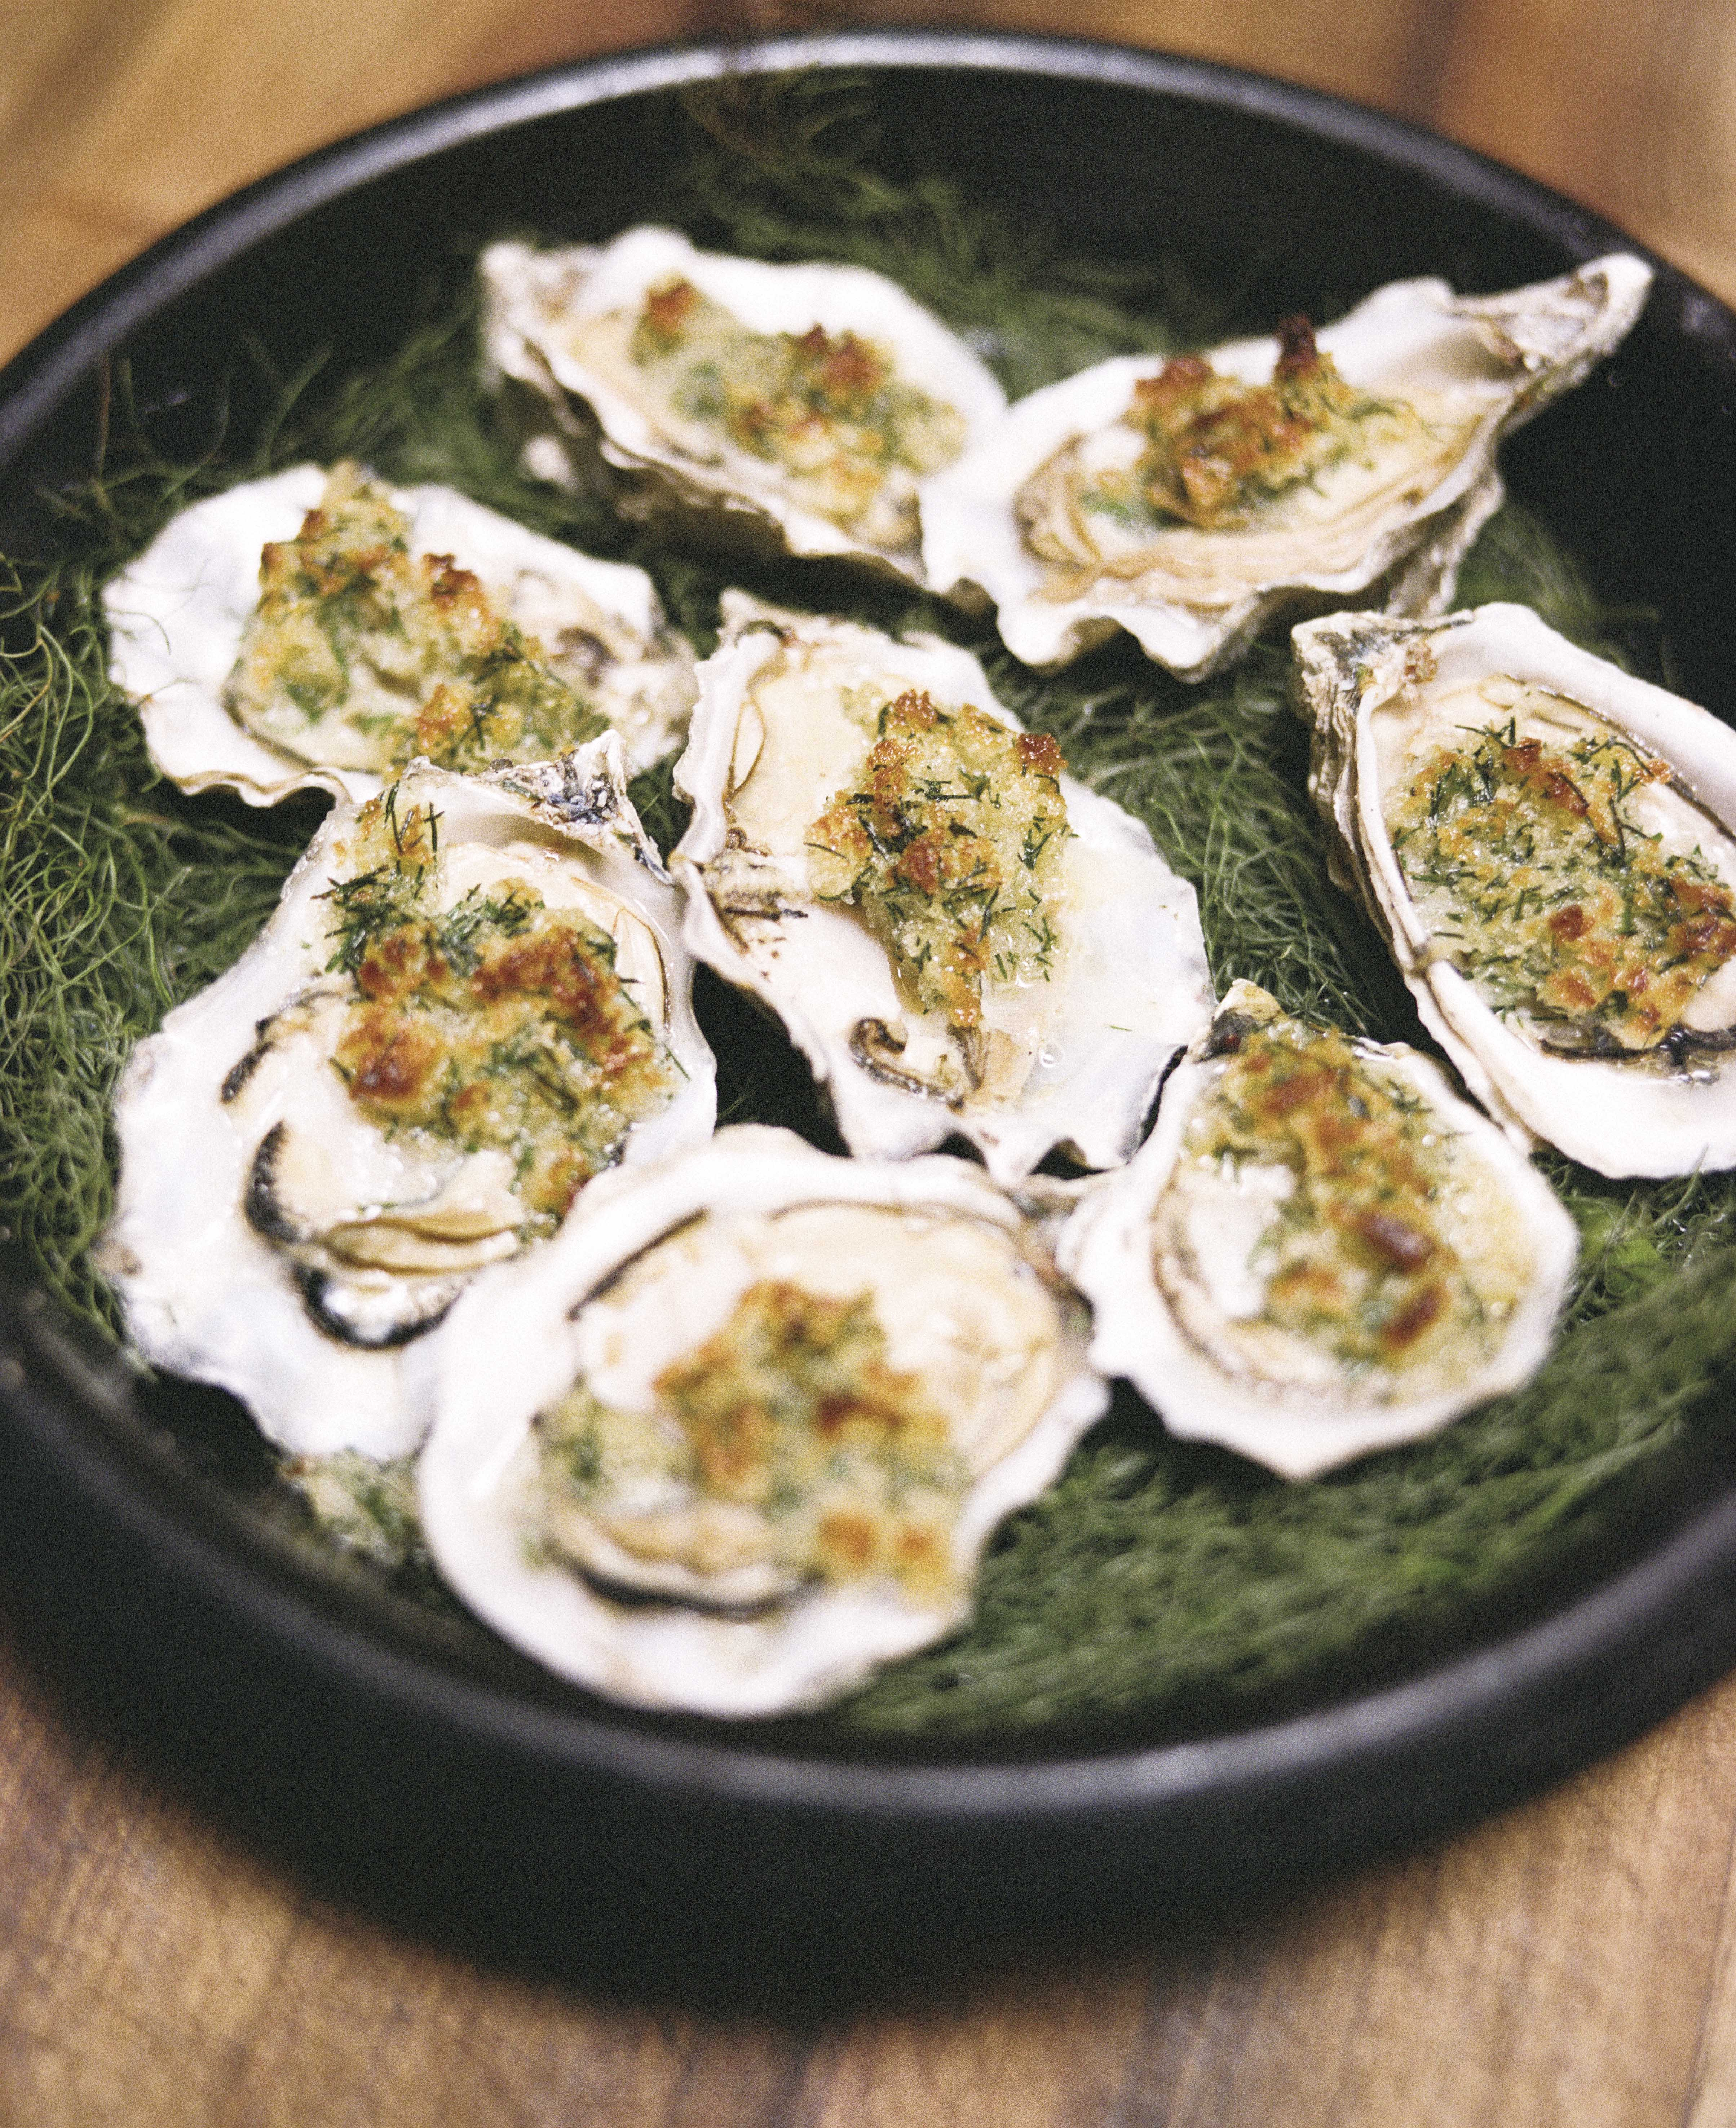 Baked Oysters with Absinthe and Breadcrumbs